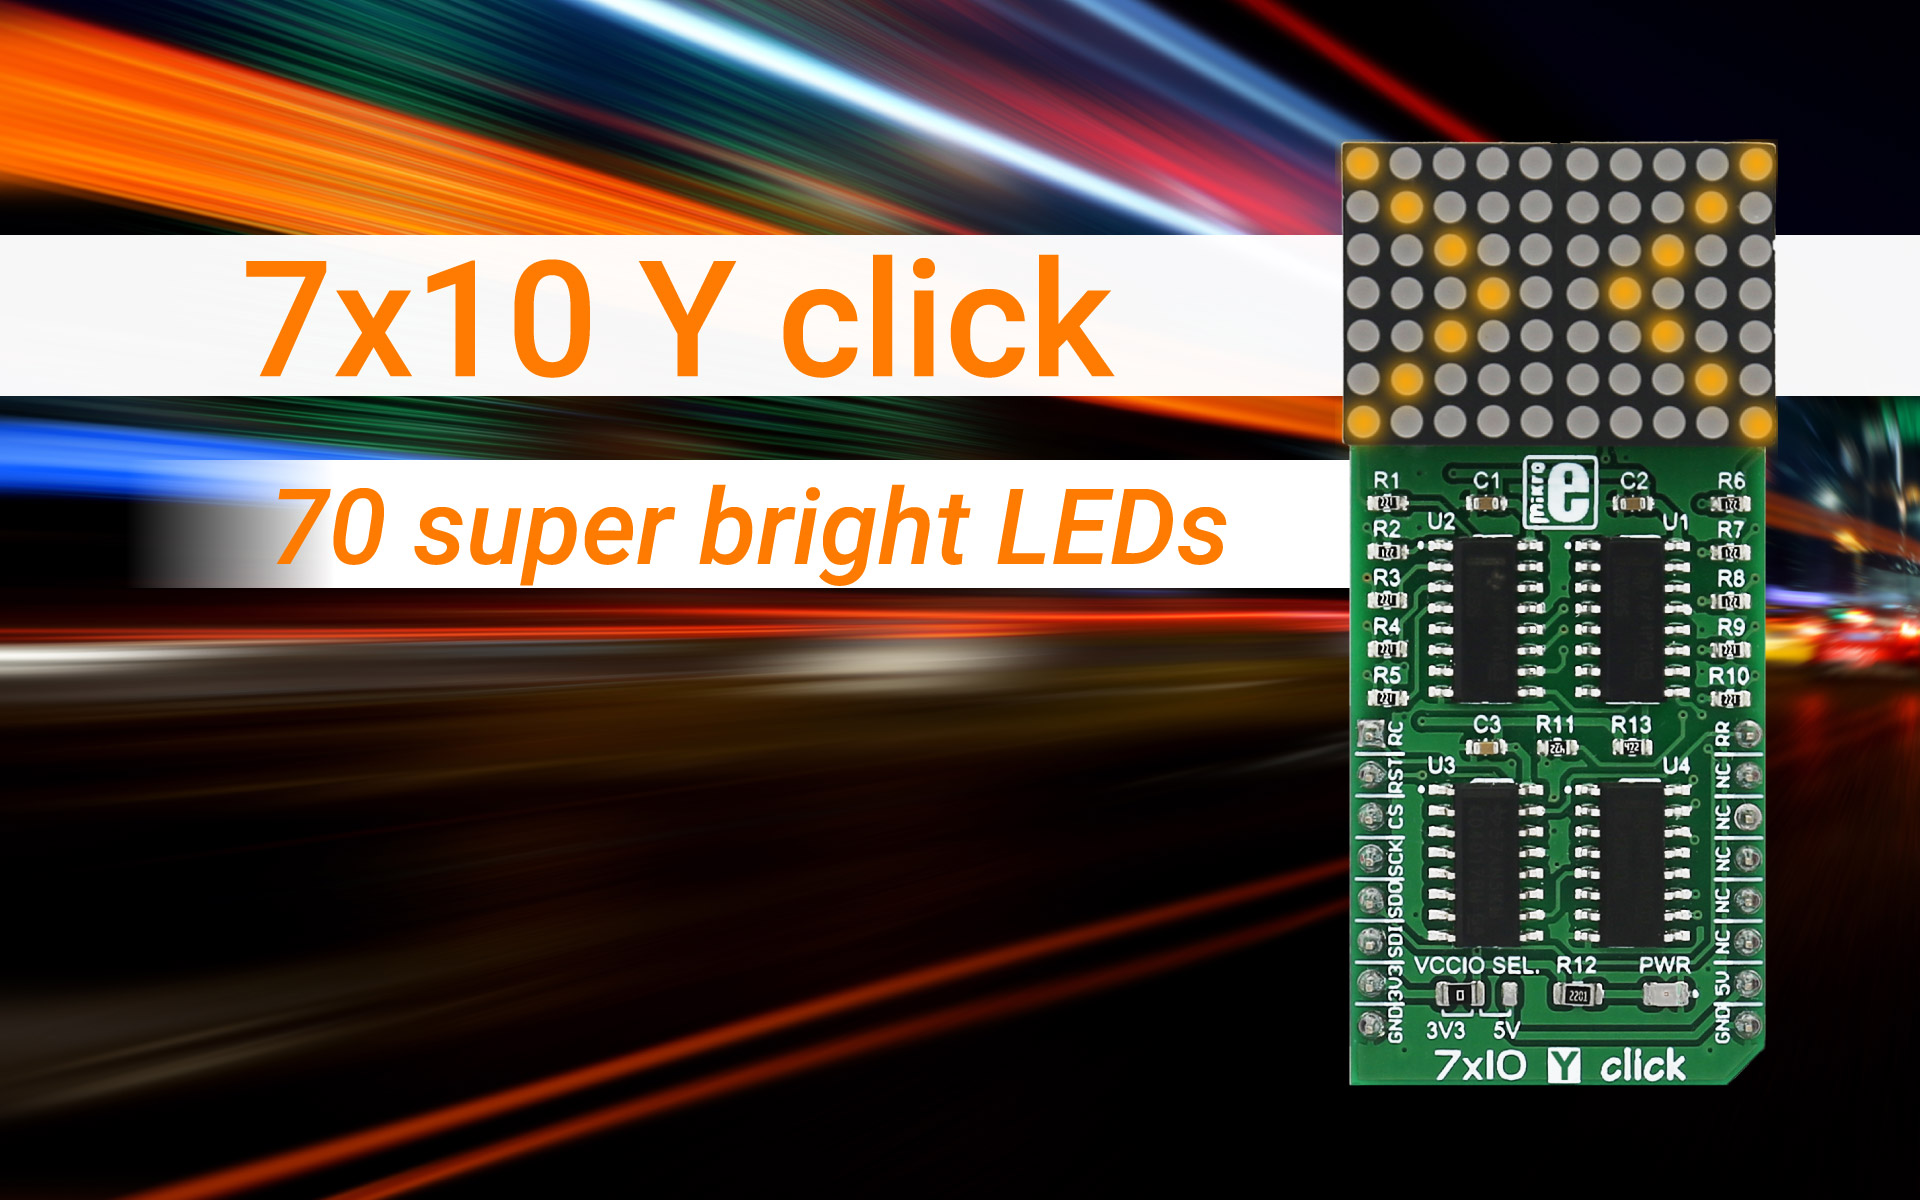 7x10 Y click - 70 yellow LEDs to brighten up your applications